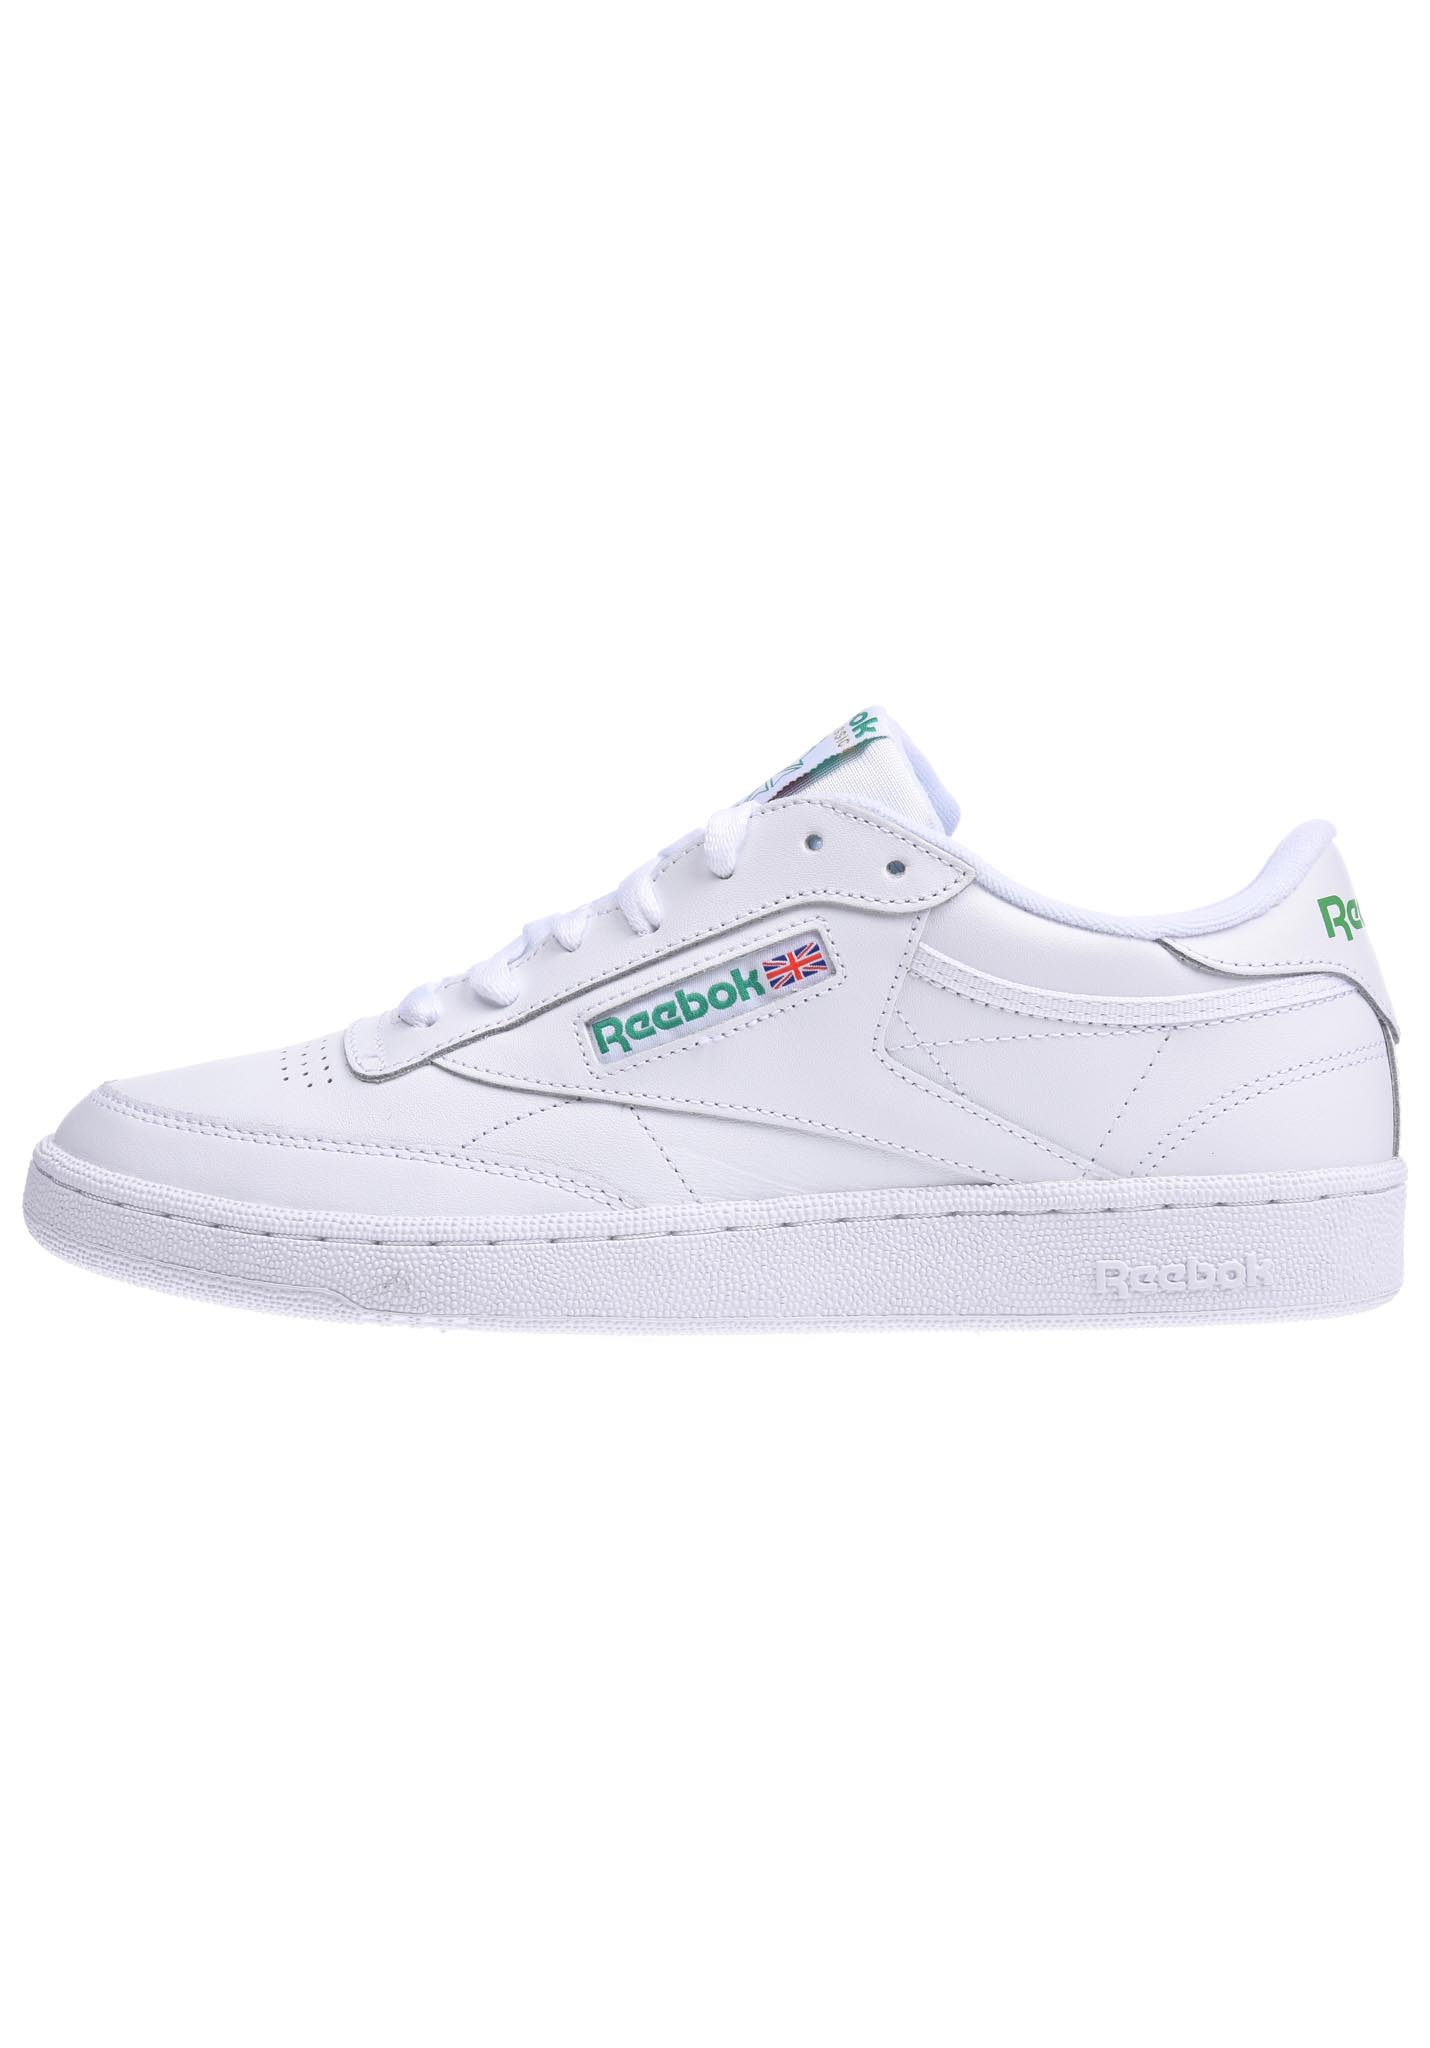 ae8ae456469 Reebok CLUB C 85 - Sneakers for Men - White - Planet Sports